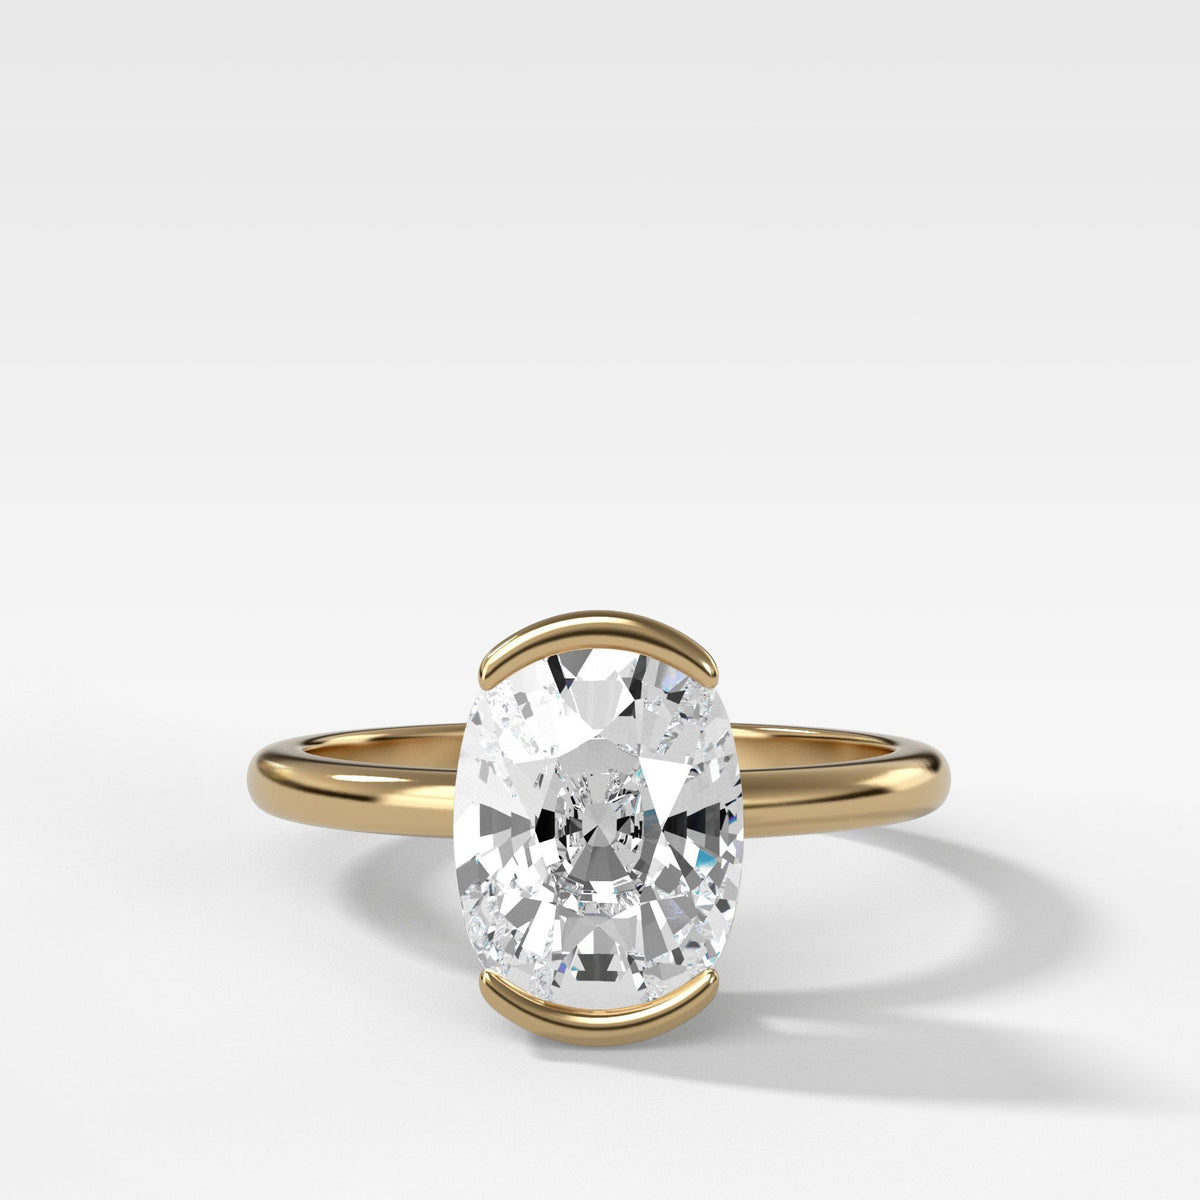 North South Half Bezel Solitaire Engagement Ring With Elongated Cushion Cut in Yellow Gold by Good Stone